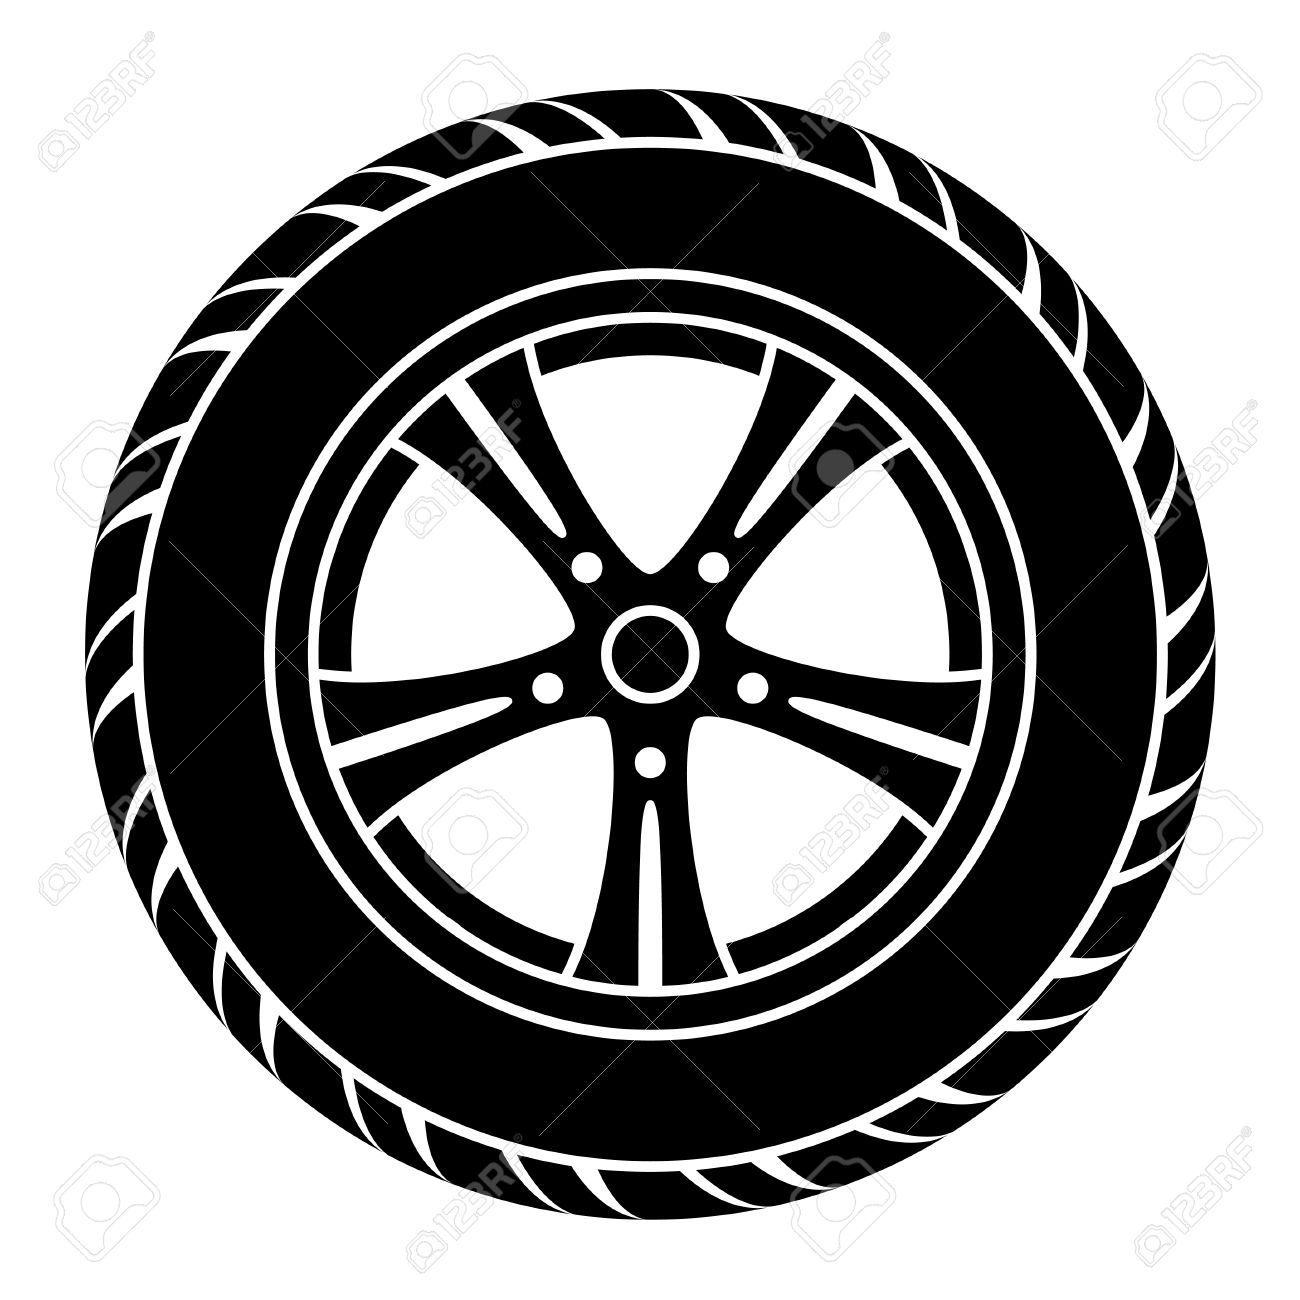 Vector Car Wheel Black White Symbol Royalty Free Cliparts Vectors And Stock Illustration Image 25427545